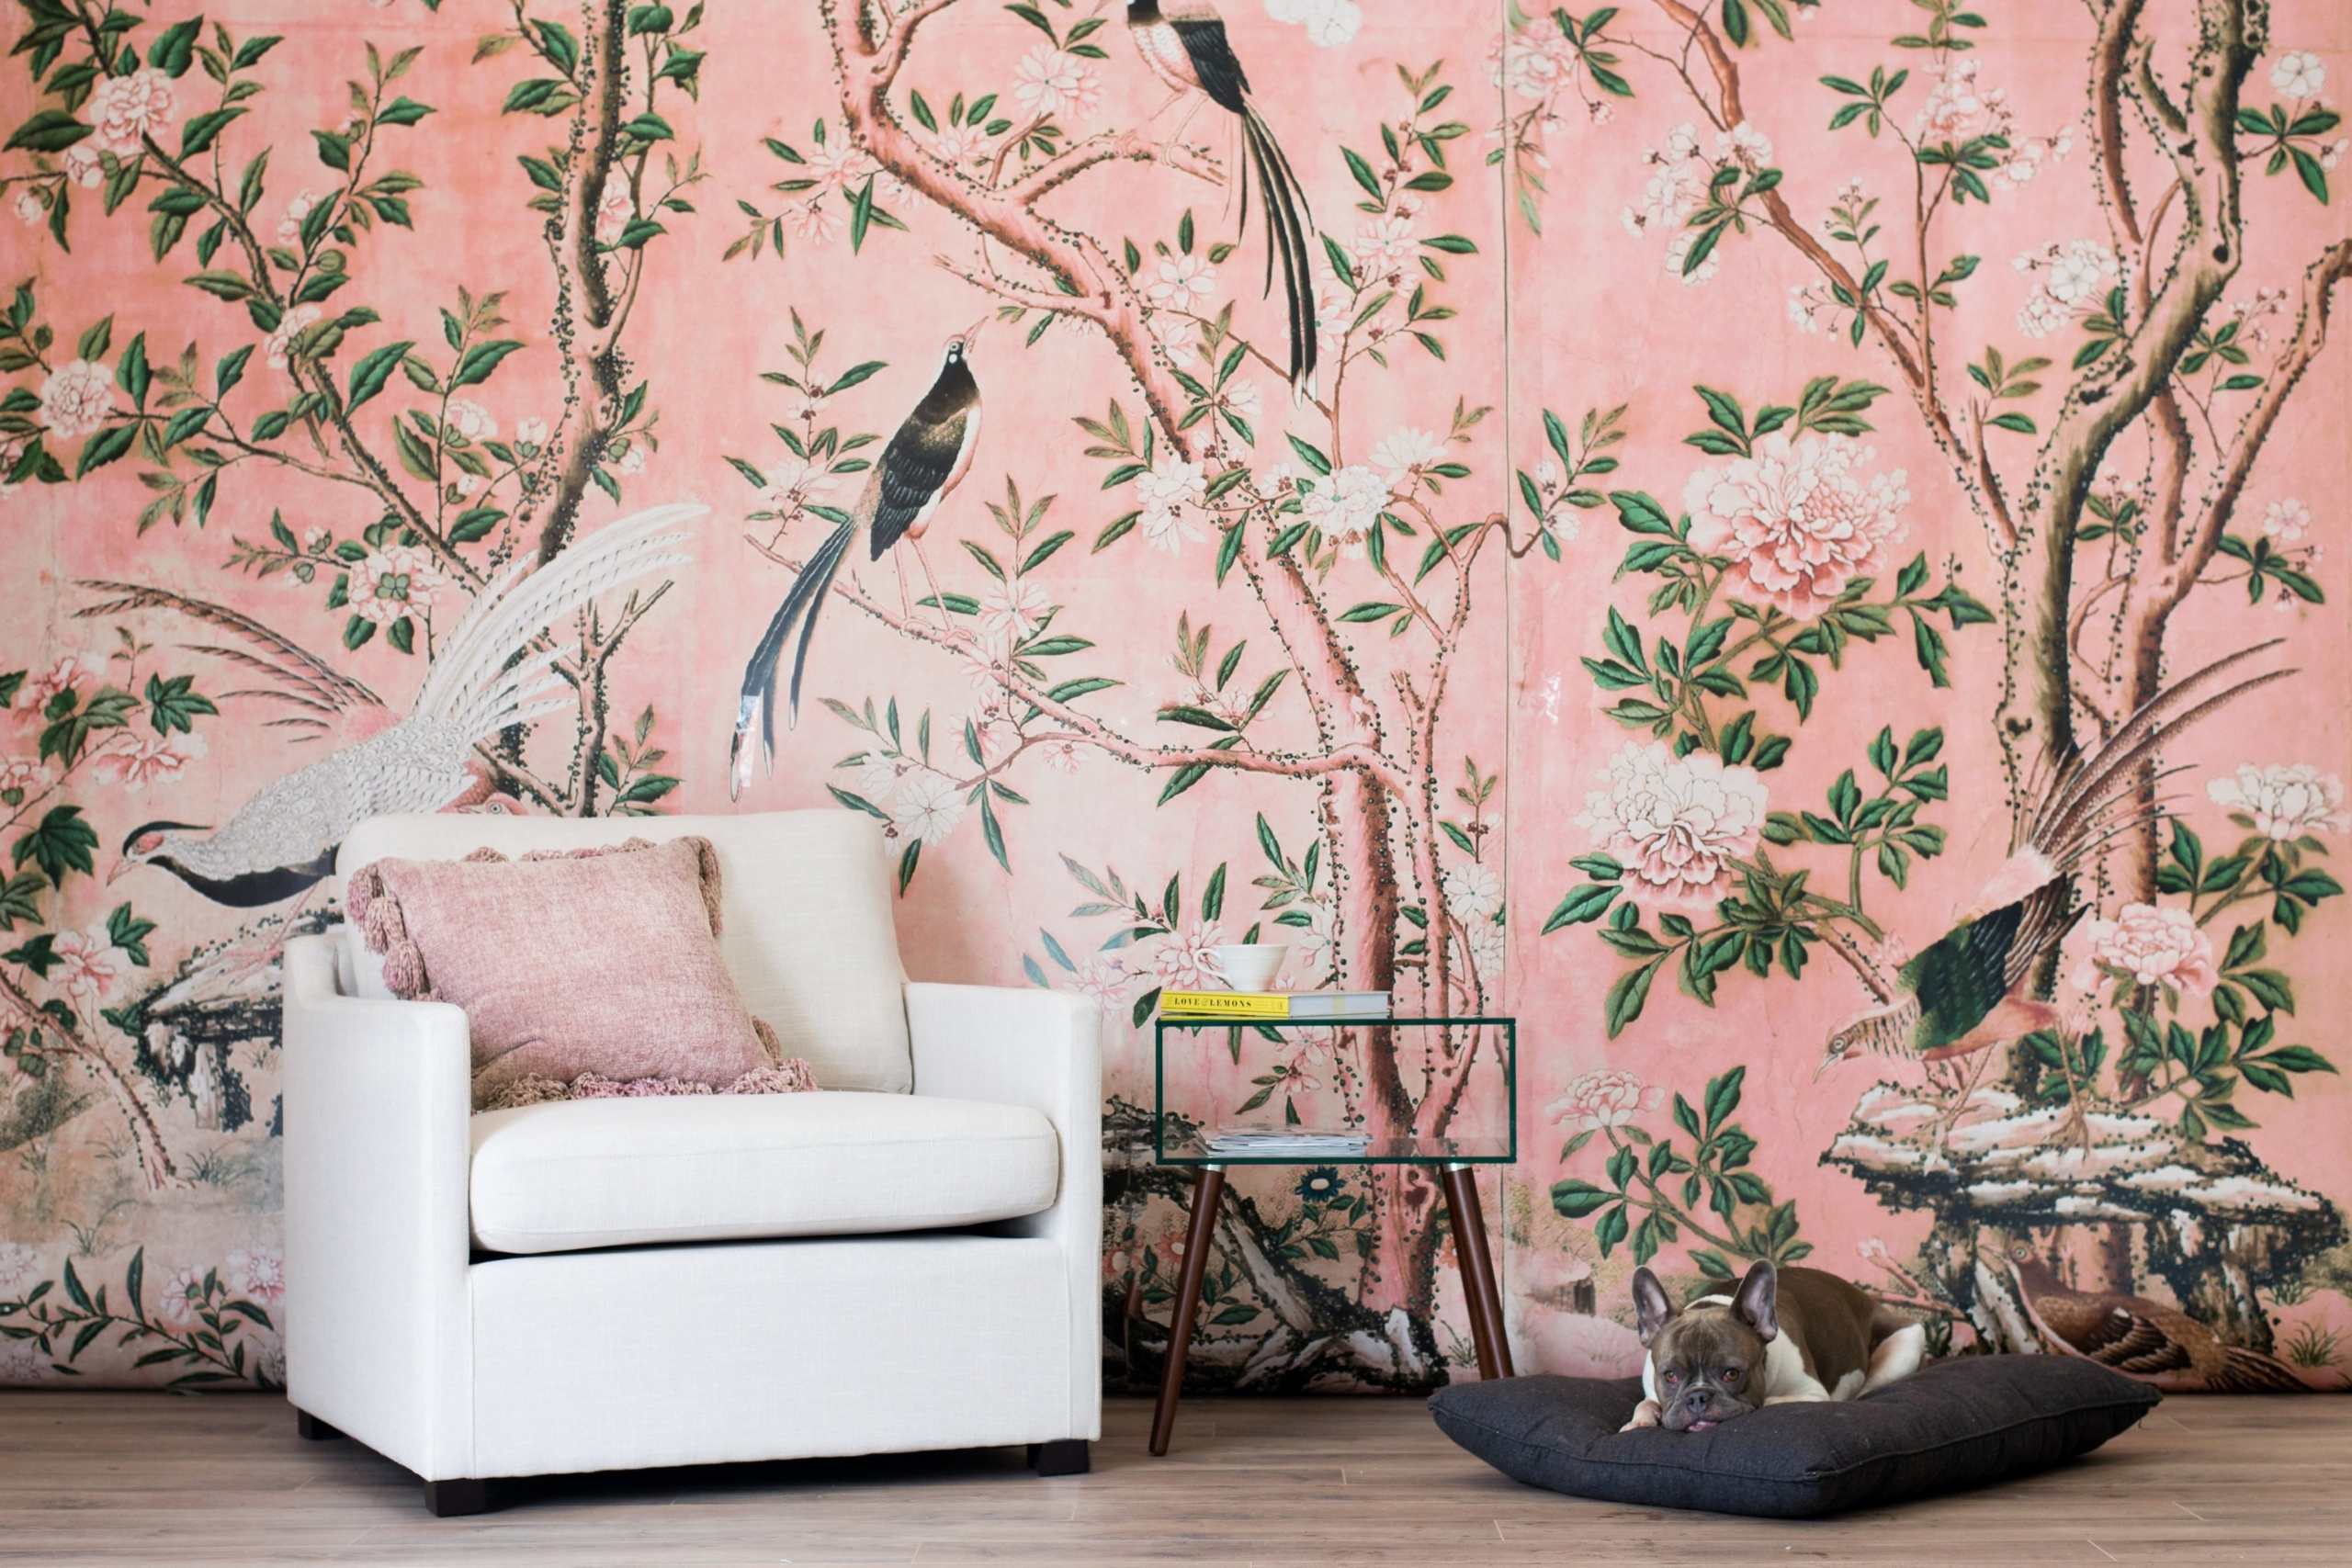 Get Chinoiserie Wallpaper Done on Your Laptop